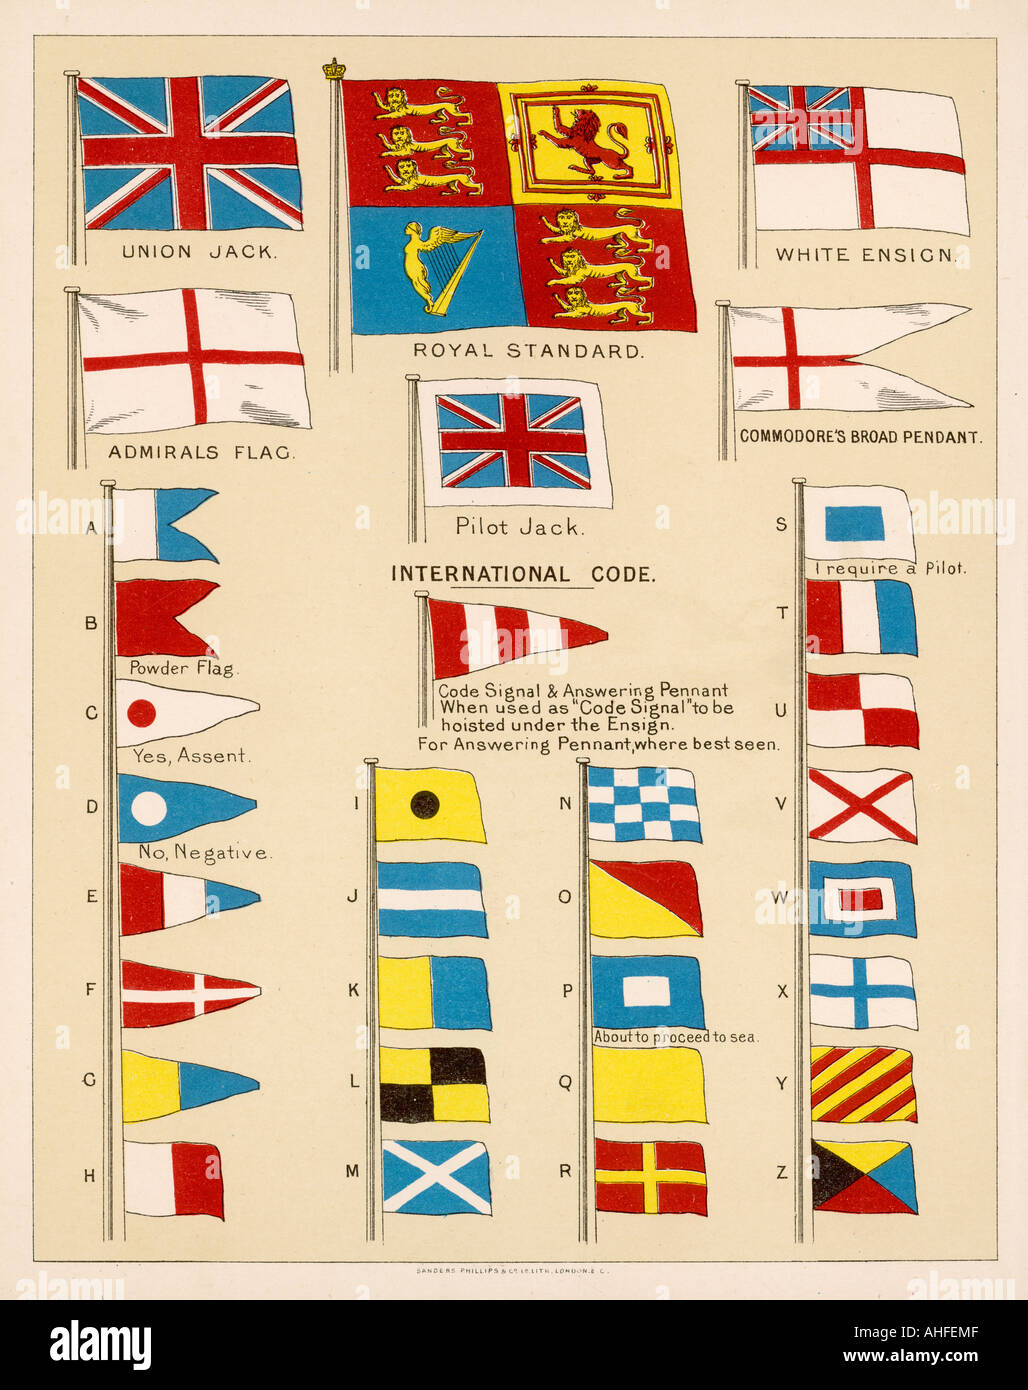 Flags Of Royal Navy - Stock Image